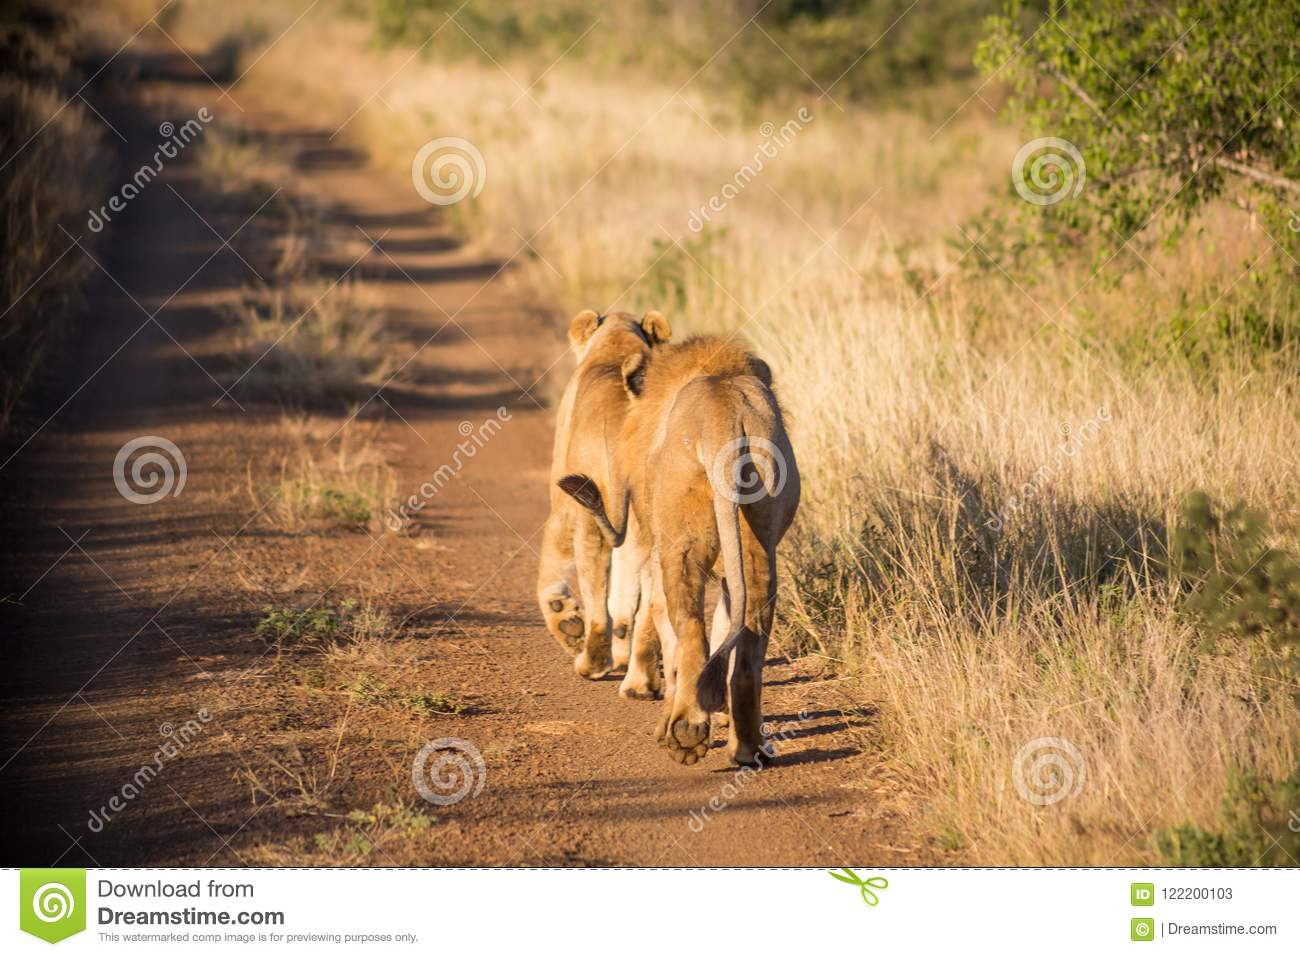 Two lions walking away on the dirt road